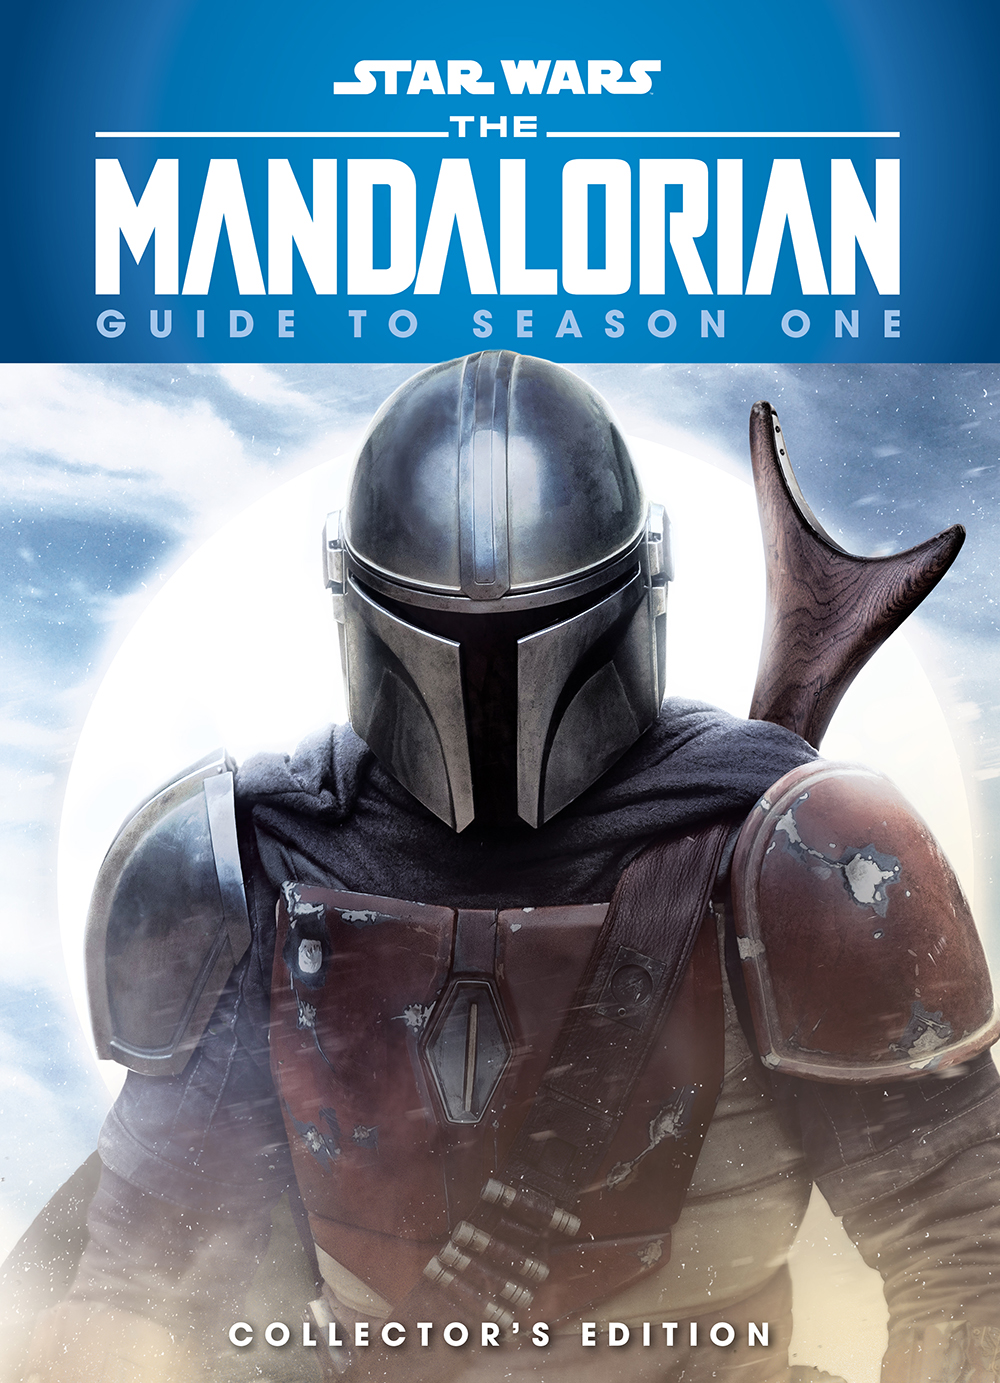 The Mandalorian: Guide to Season One - Collector's Edition (Comic Store Cover) (18.05.2021)